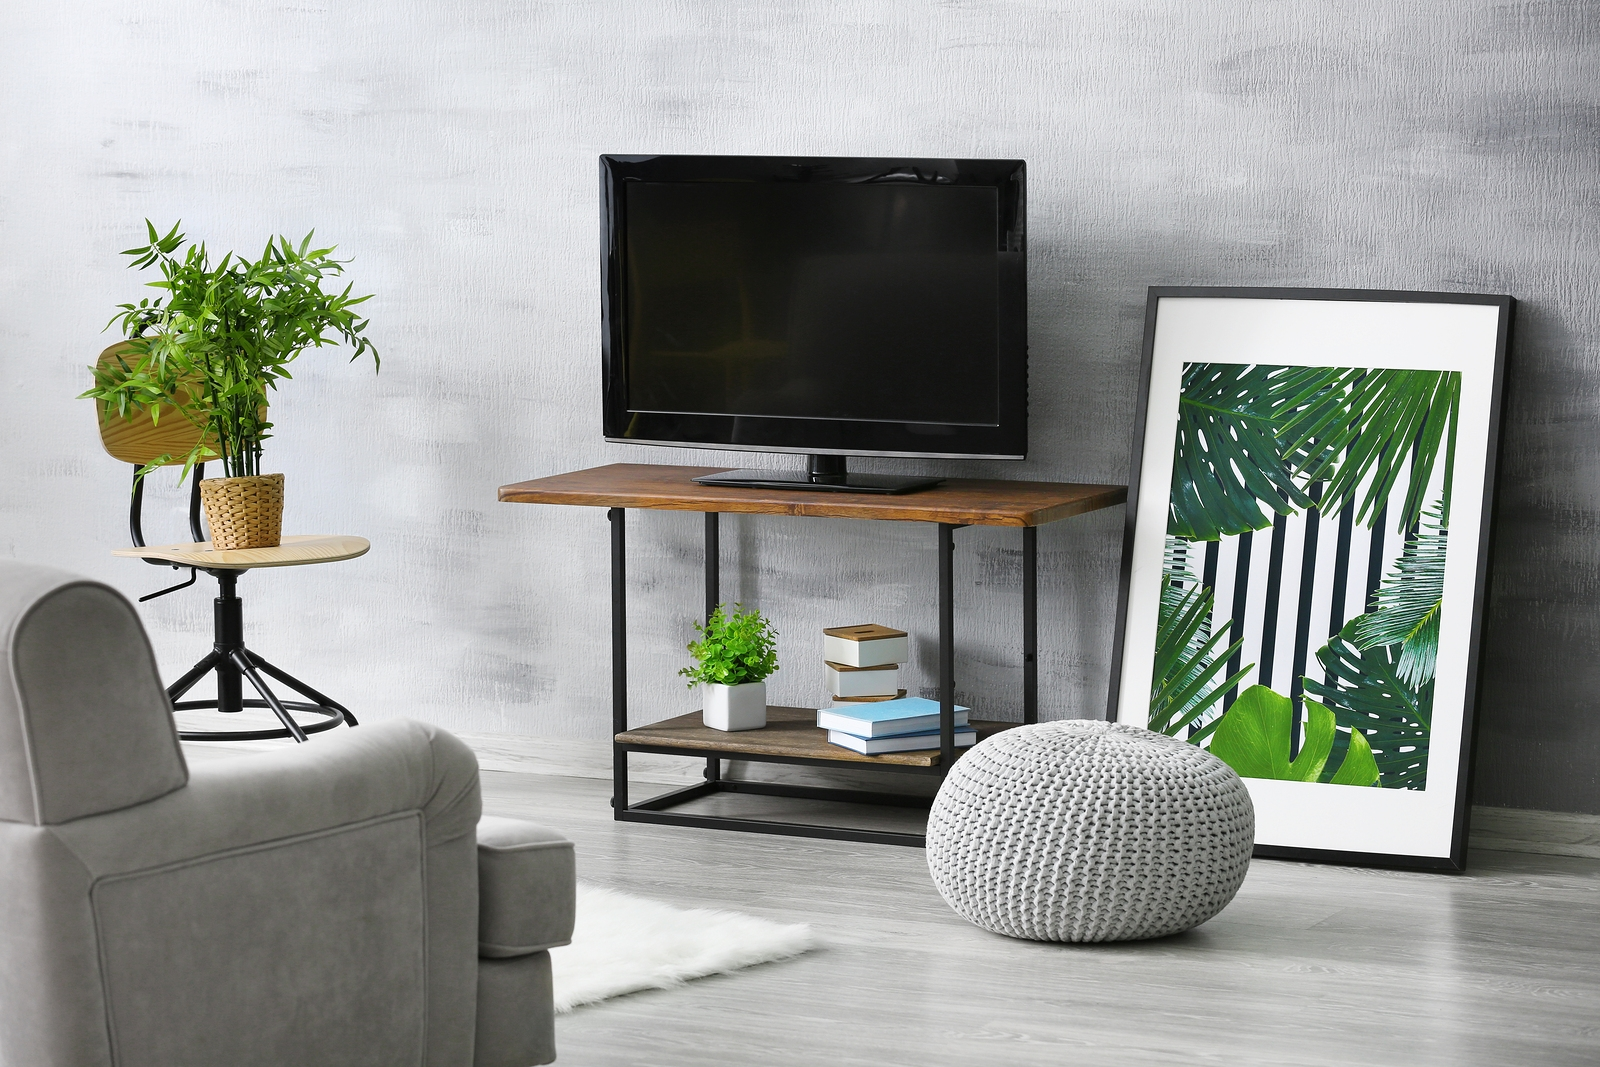 bigstock-Modern-TV-set-on-stand-in-livi-213352948